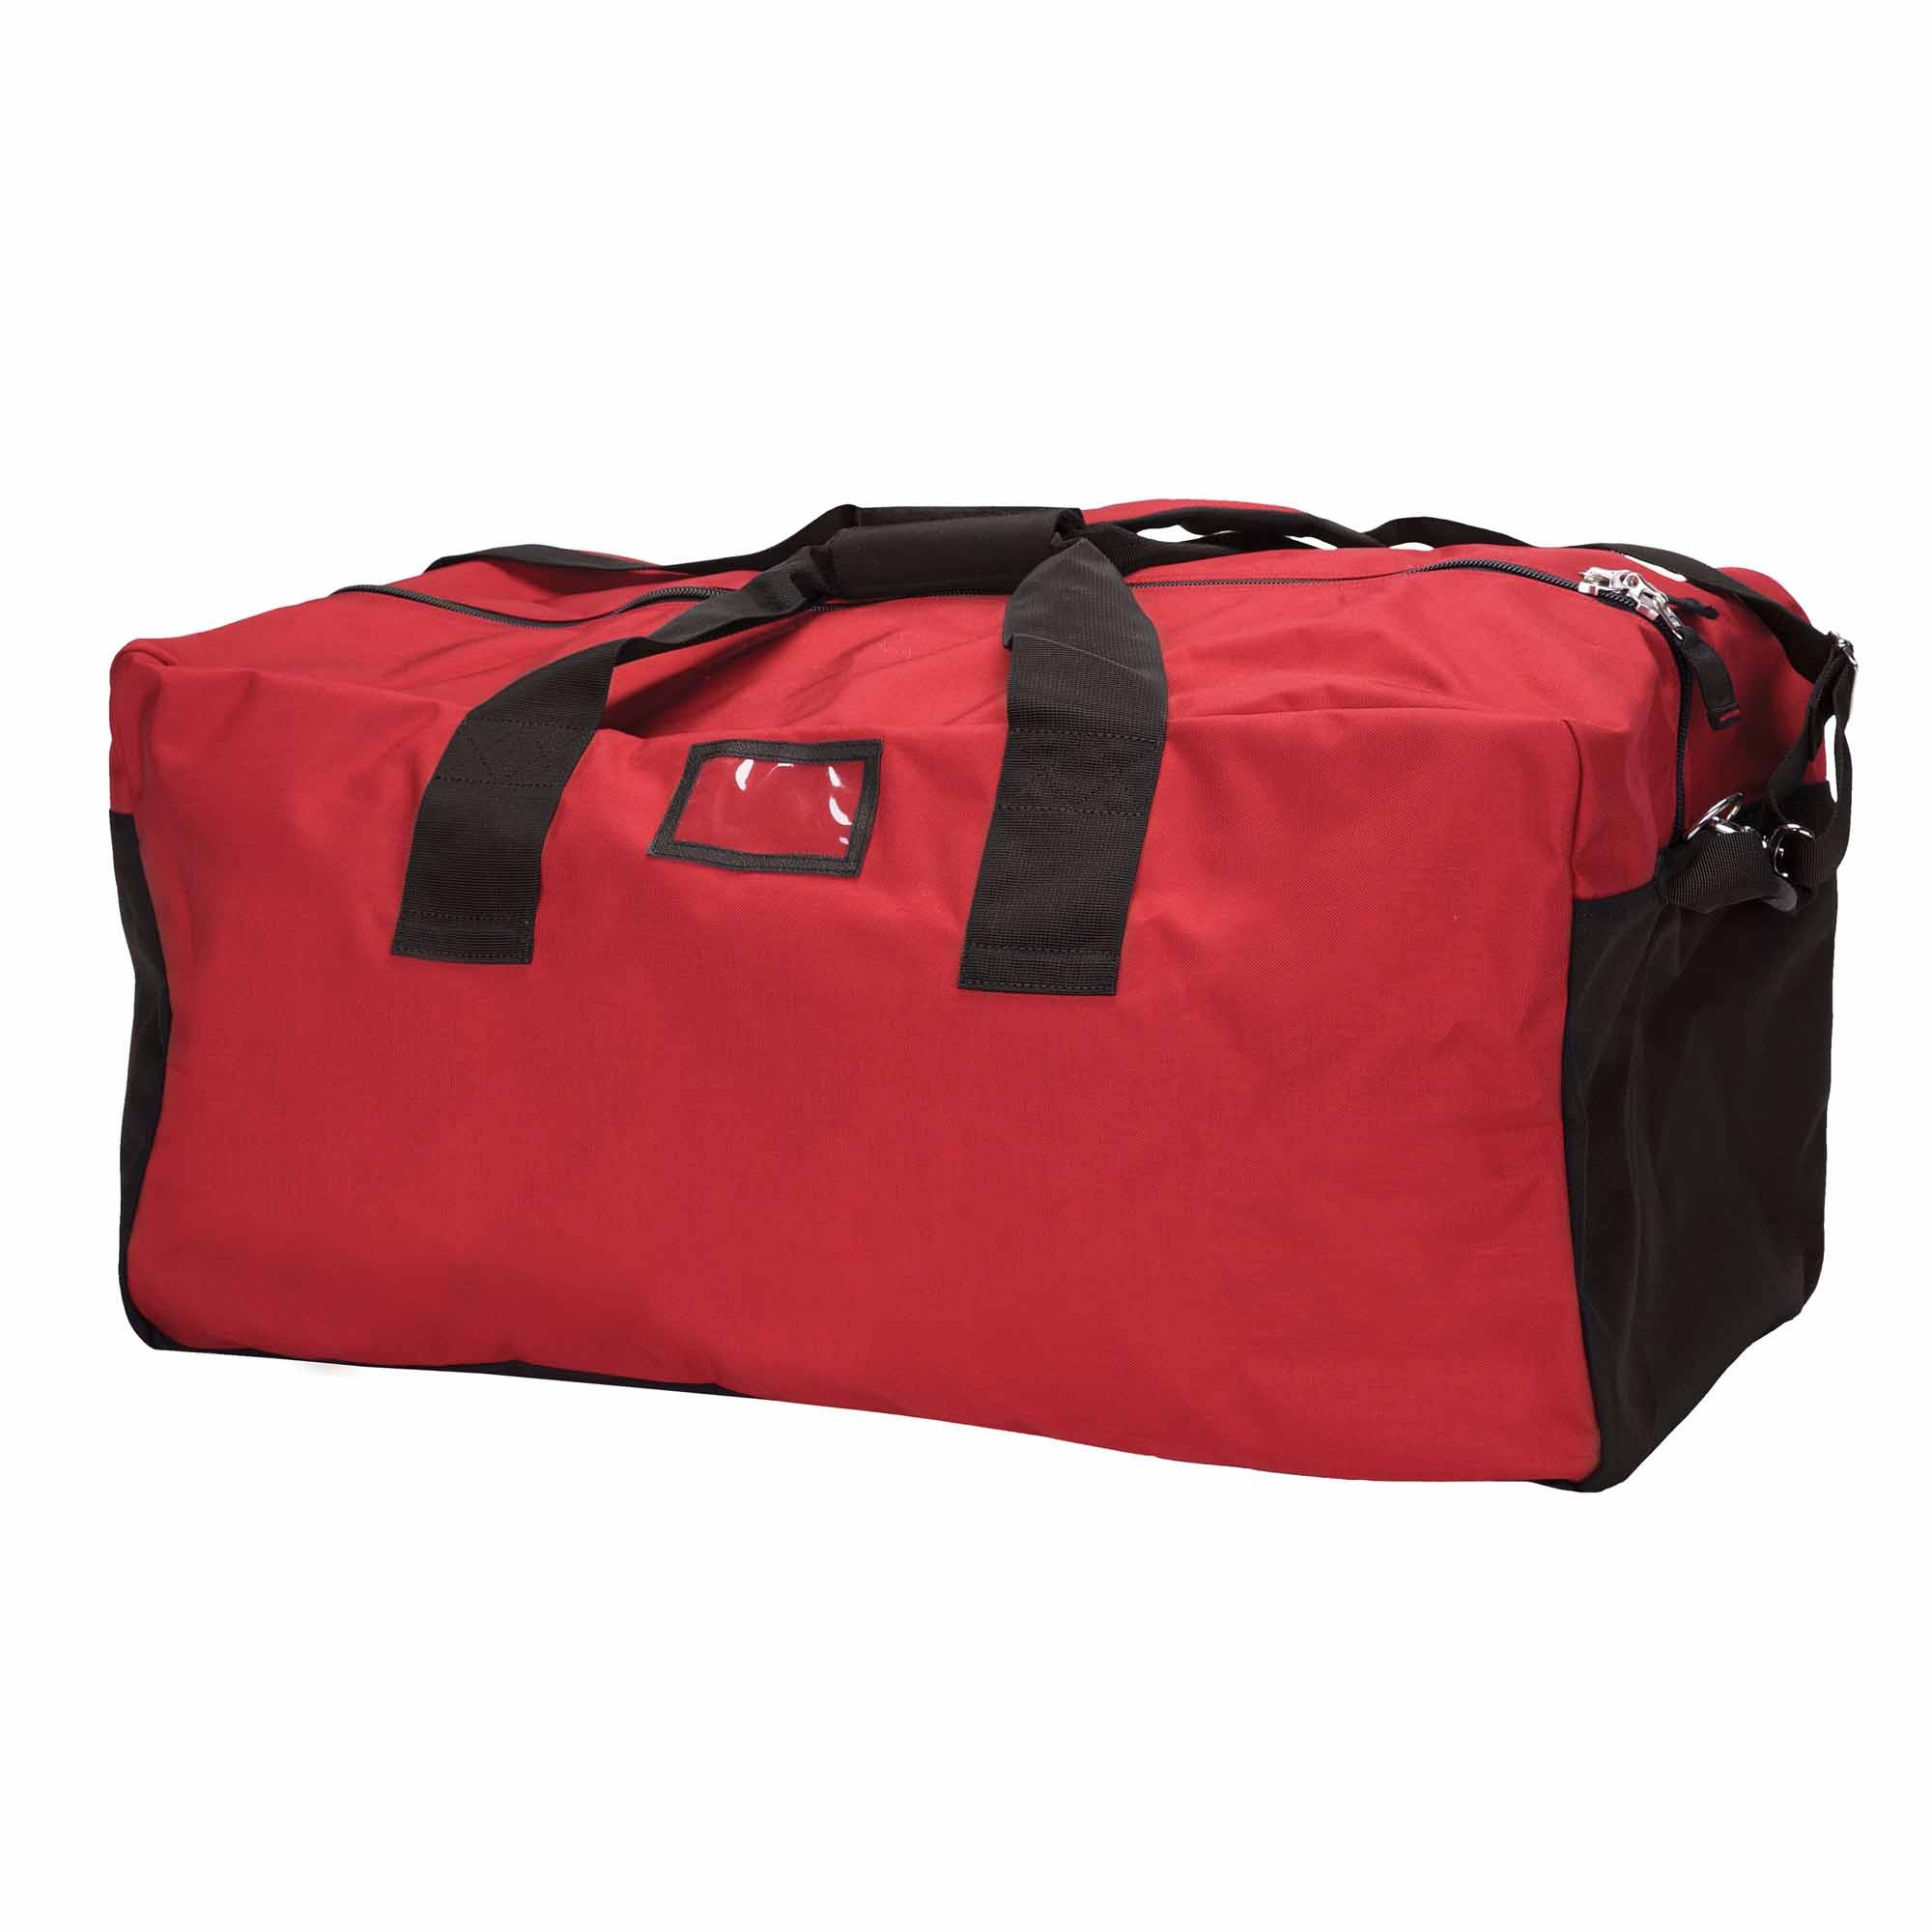 5.11 Tactical Bag Red 56878